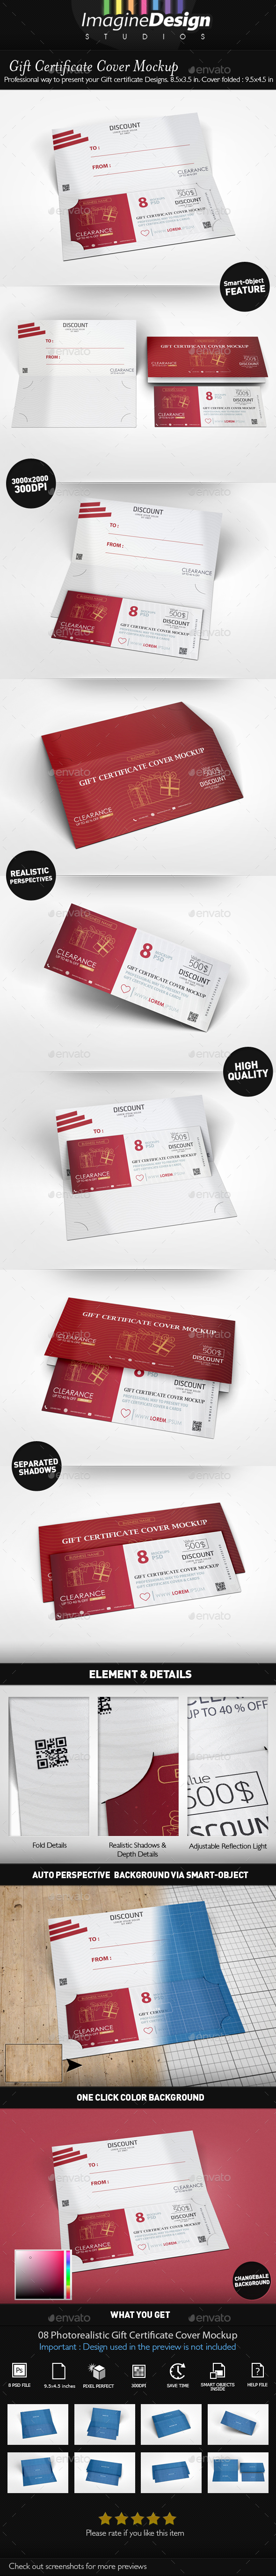 Gift Certificate Cover Mock-up - Miscellaneous Print